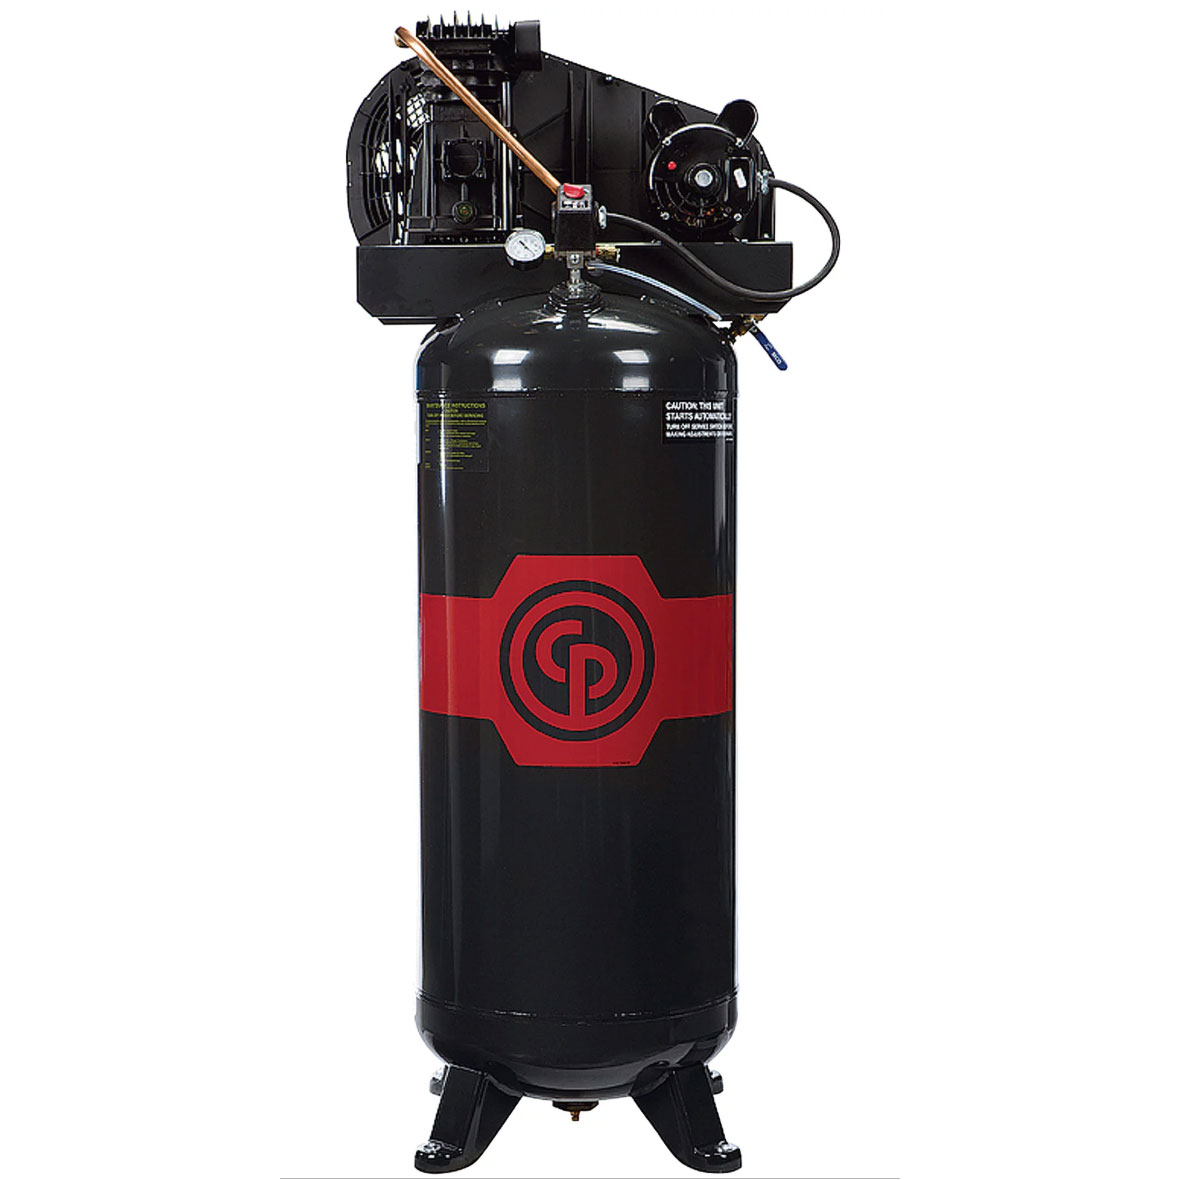 Chicago Pneumatic Reciprocating 8090254049 Air Compressor 3.5 HP, 60 Gallon, 208/230 Volt, 1-Phase FREE Shipping 110520 130psi 12.3cfm